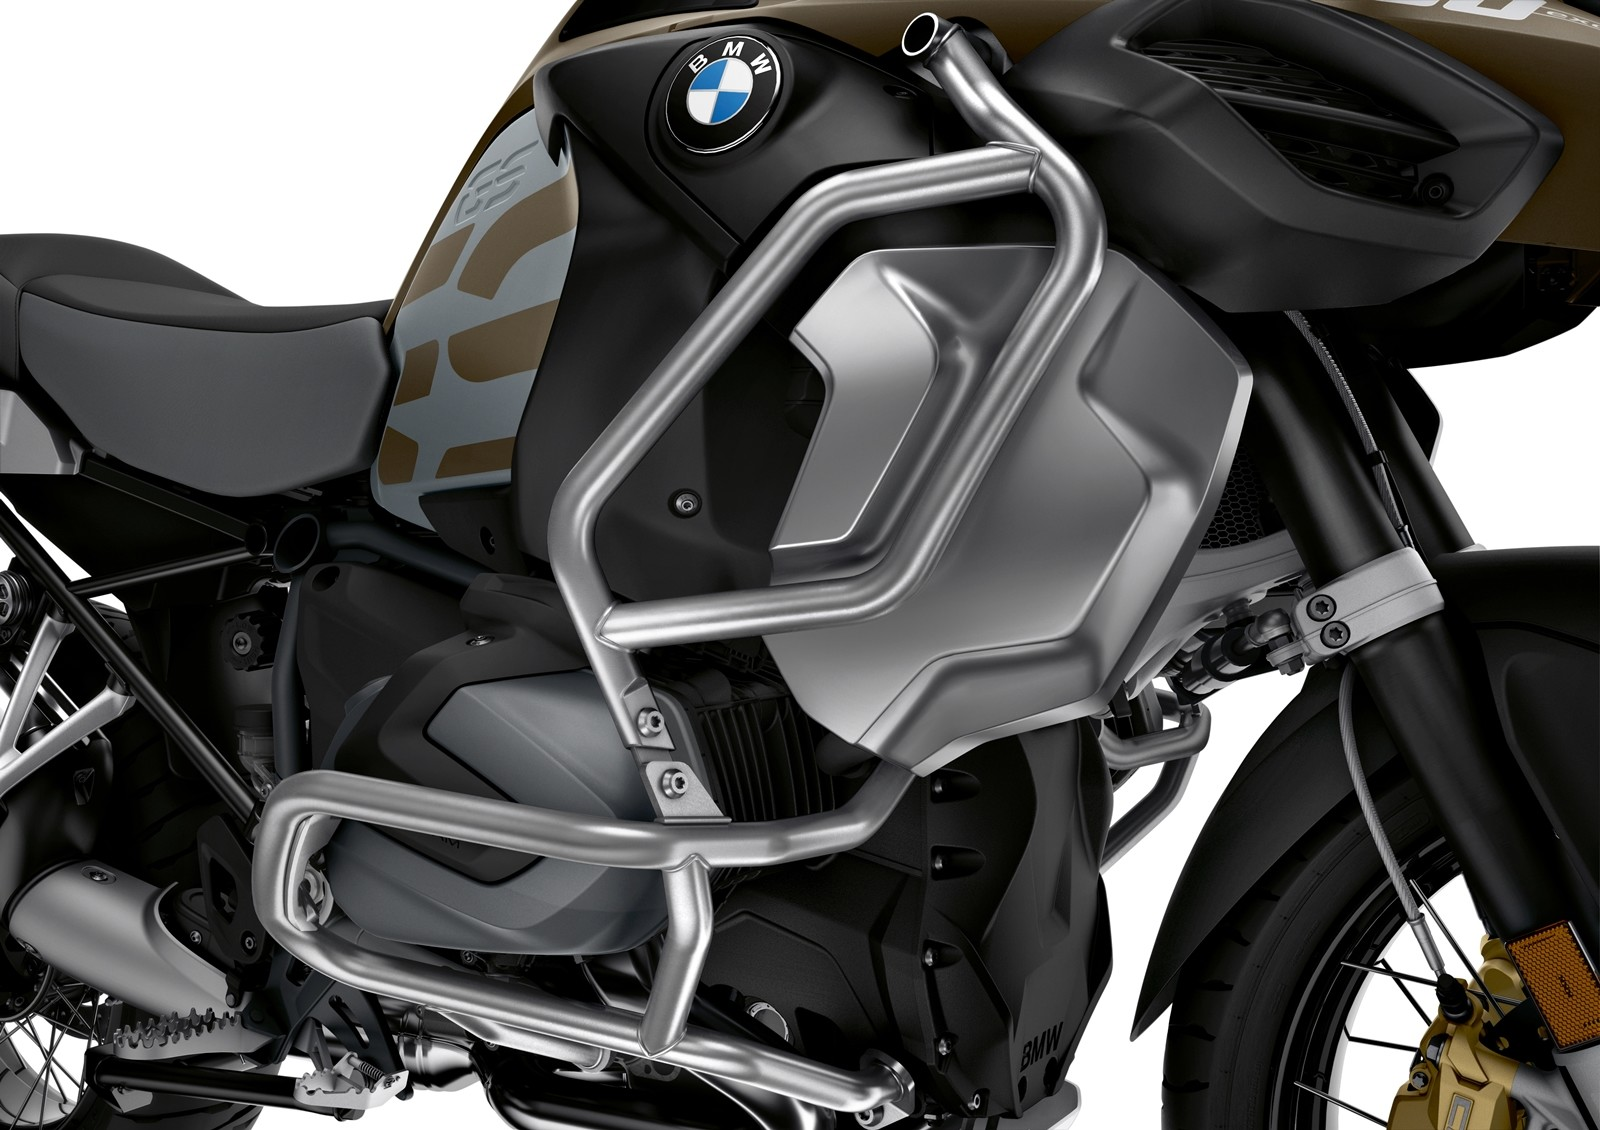 Foto de BMW R 1250 GS Adventure 2019 (33/37)